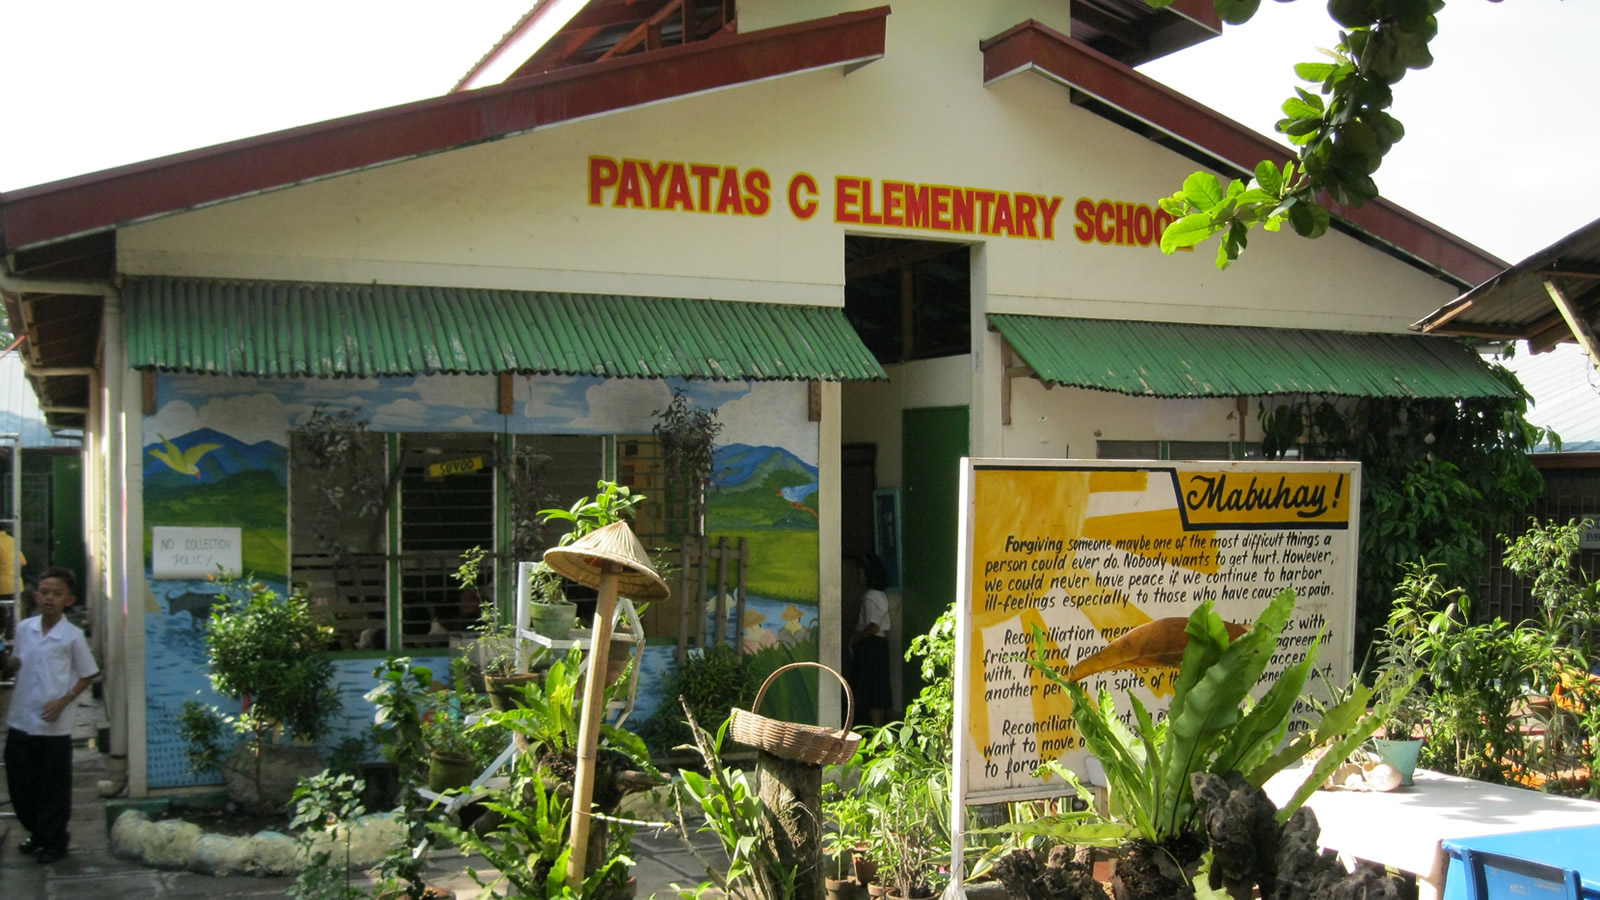 Payatas Elementary School in the Philippines